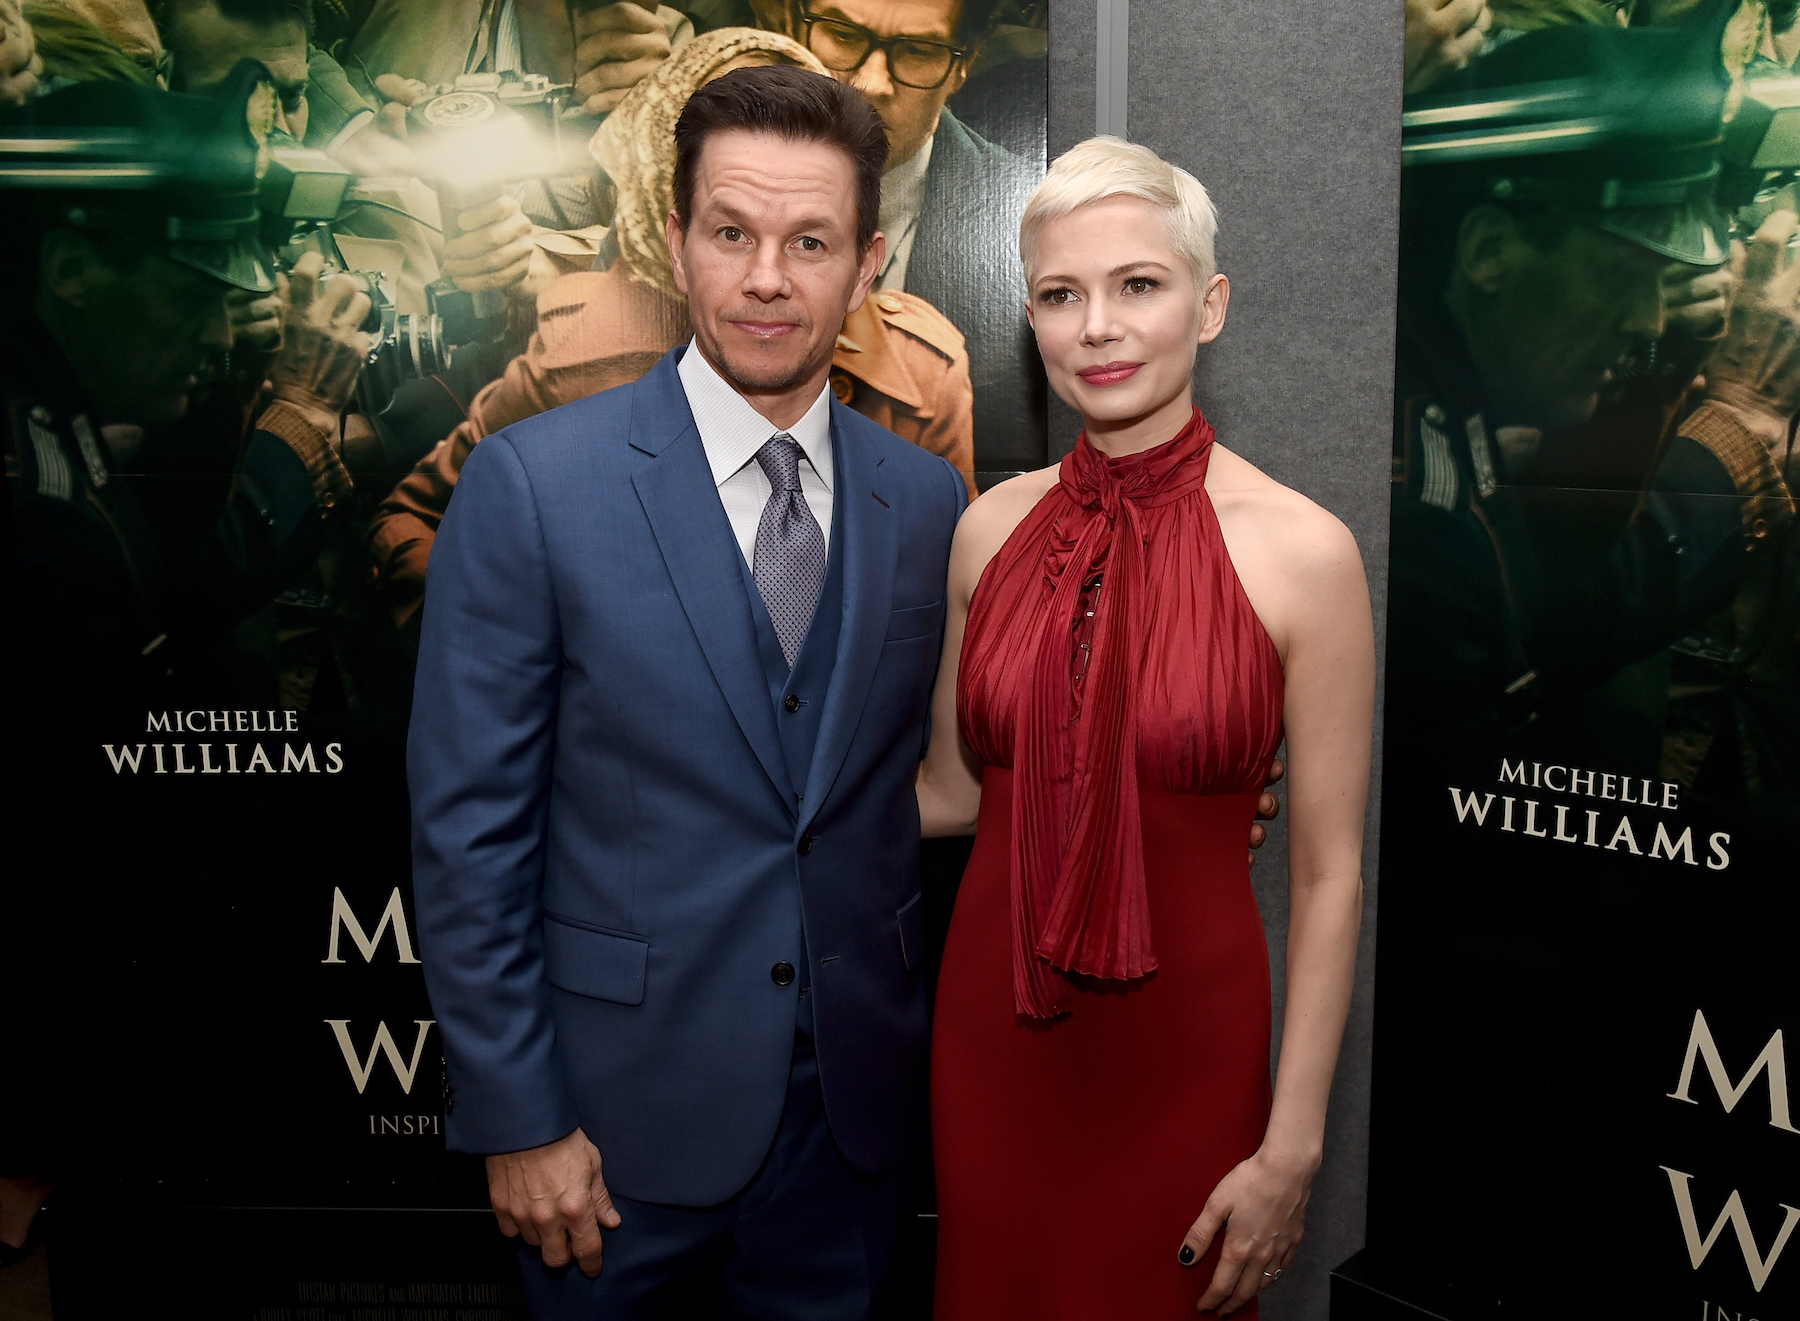 Mark Wahlberg and Michelle Williams